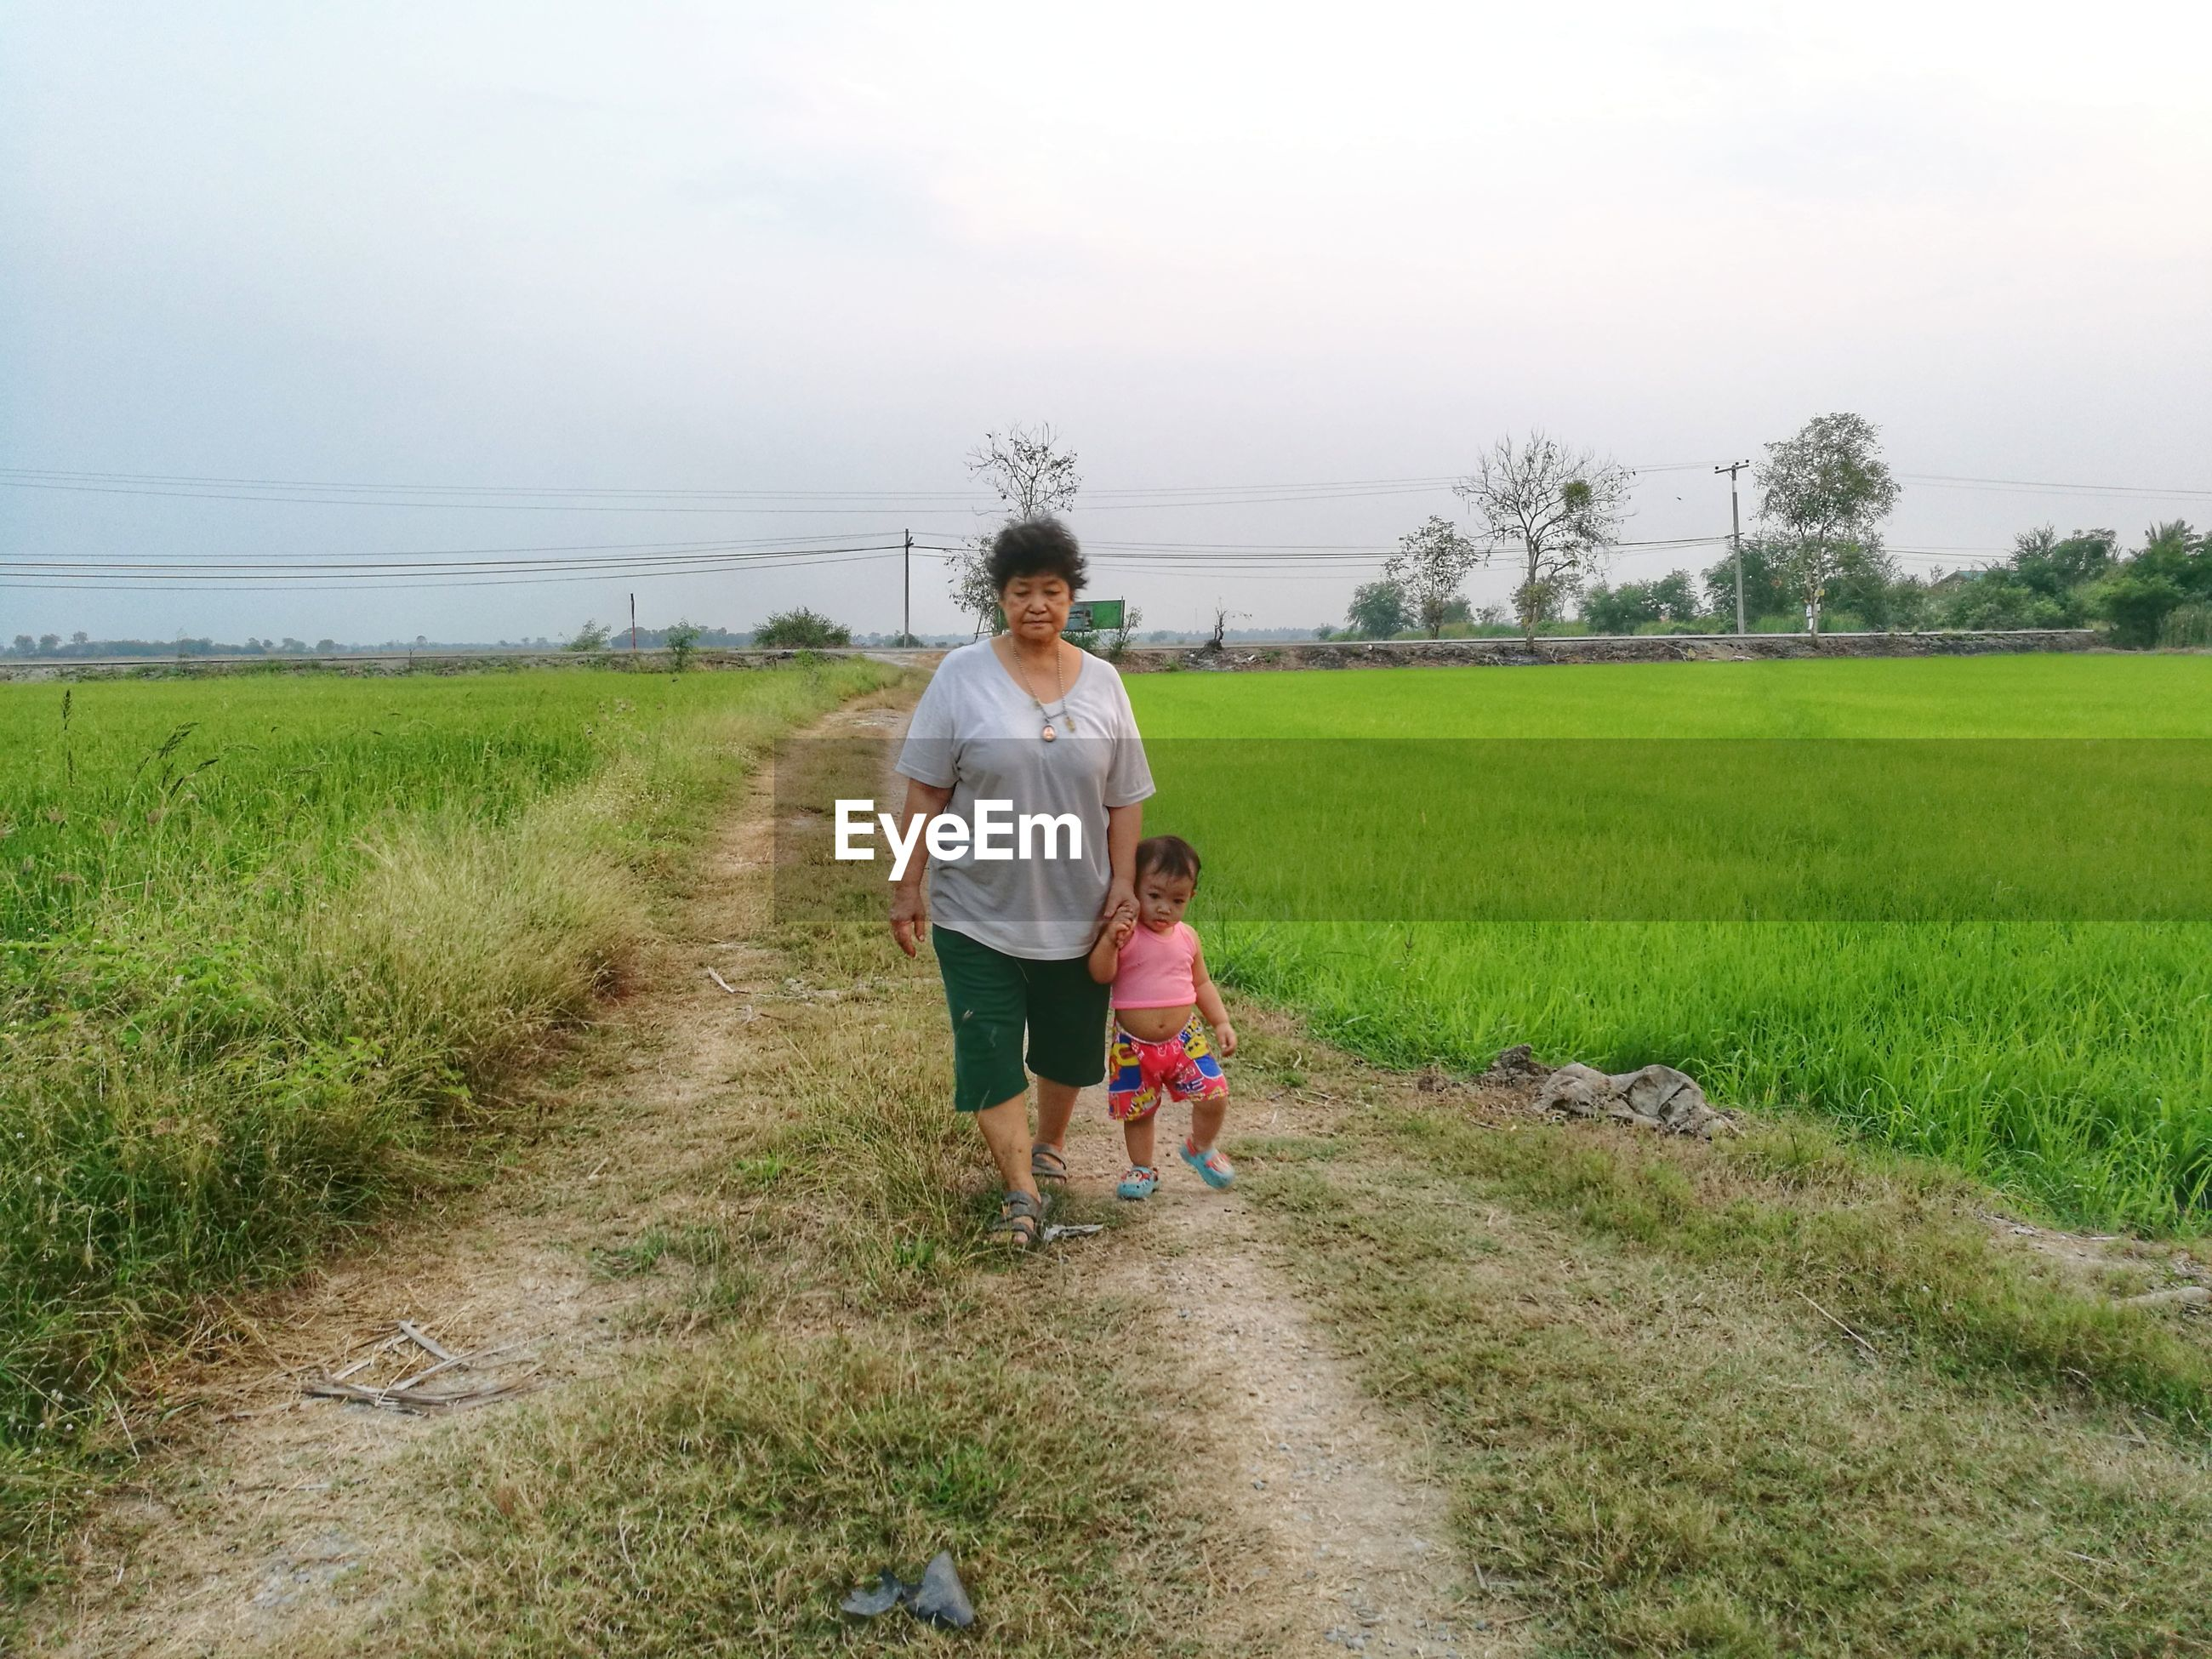 Woman walking with granddaughter on field against sky